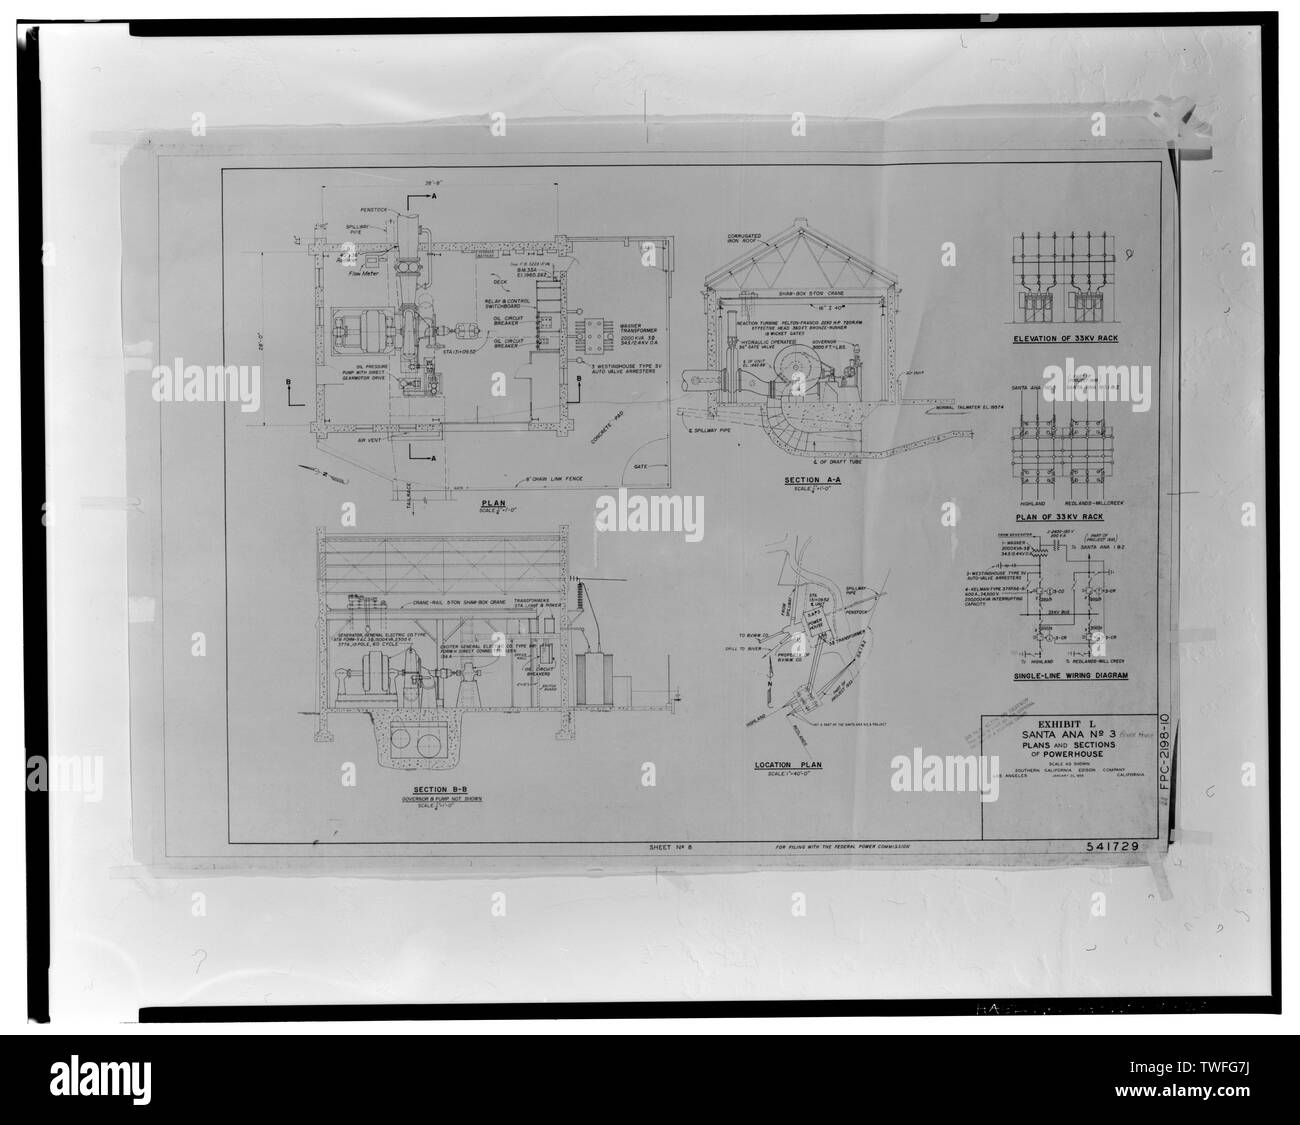 PLANS AND SECTIONS OF POWERHOUSE. SANTA ANA NO. 3, EXHIBIT L, JAN. 25, 1956 (SHEET 8; FOR FILING WITH FEDERAL POWER COMMISSION). SCE drawing no. 541729. - Santa Ana River Hydroelectric System, SAR-3 Powerhouse, San Bernardino National Forest, Redlands, San Bernardino County, CA - Stock Image